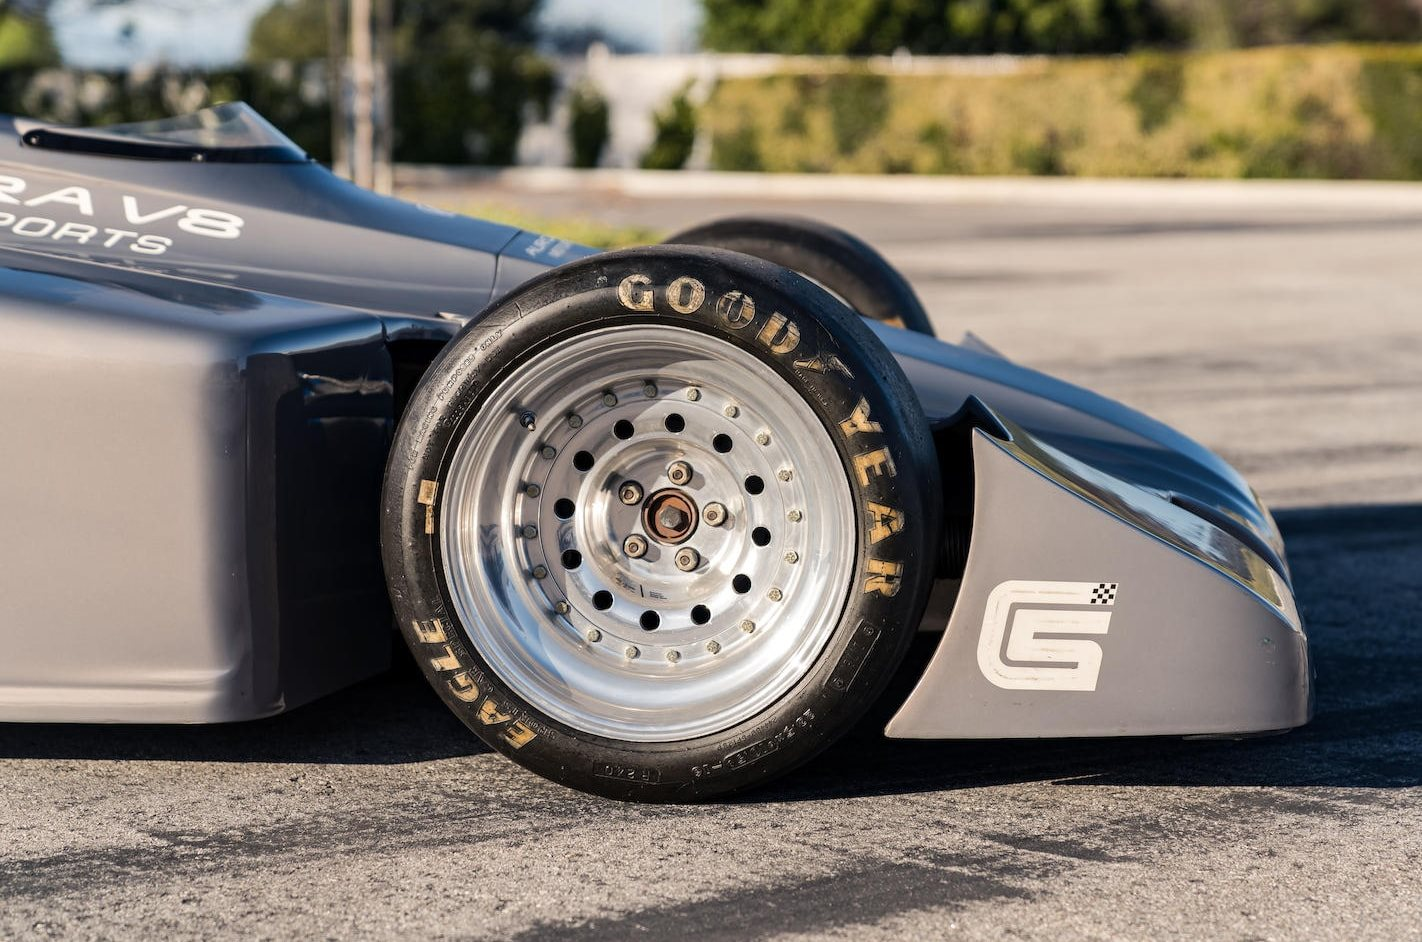 1997 Shelby Helby Aurora V8 Can-Am (39)